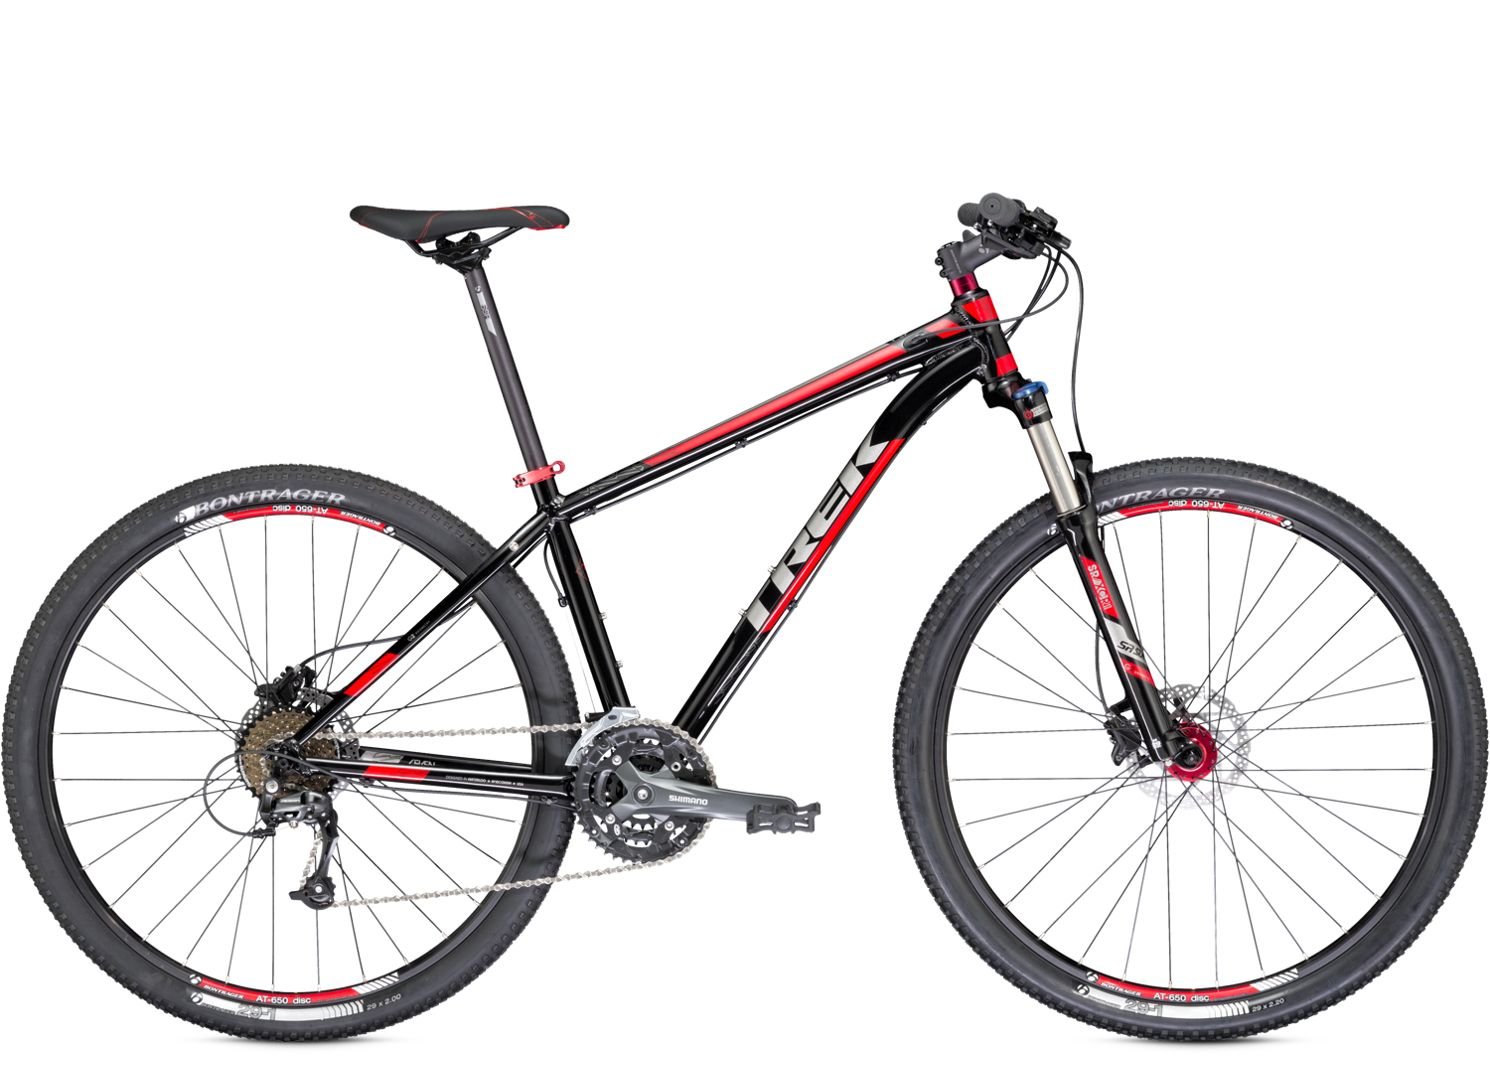 15 Best Trek Mountain Bikes 2014 Images On Pinterest Cross